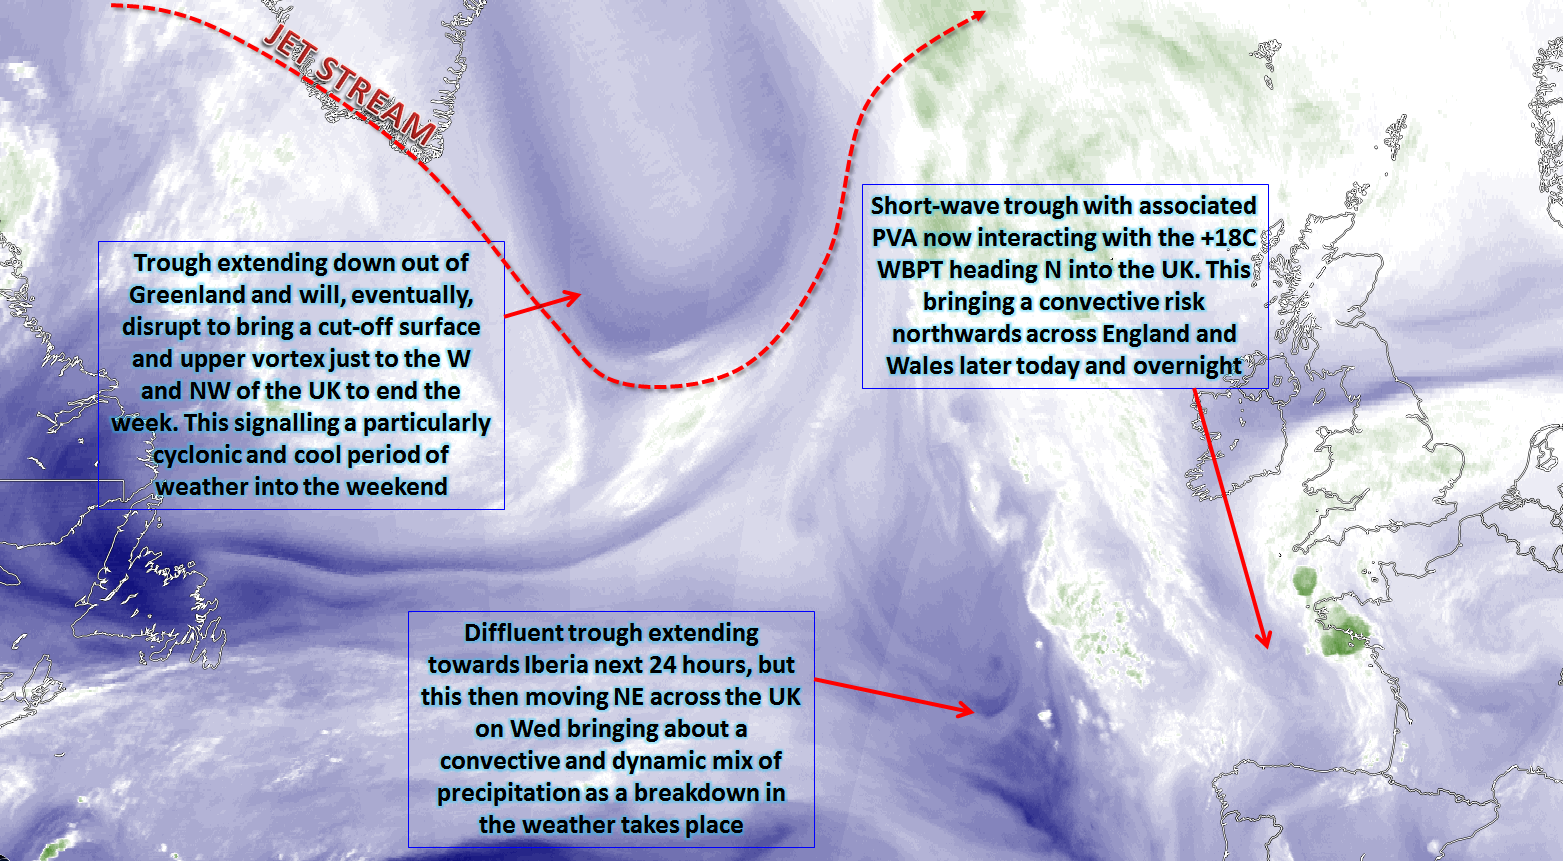 Synoptic Guidance - Convective Breakdown then Cyclonic Dominance